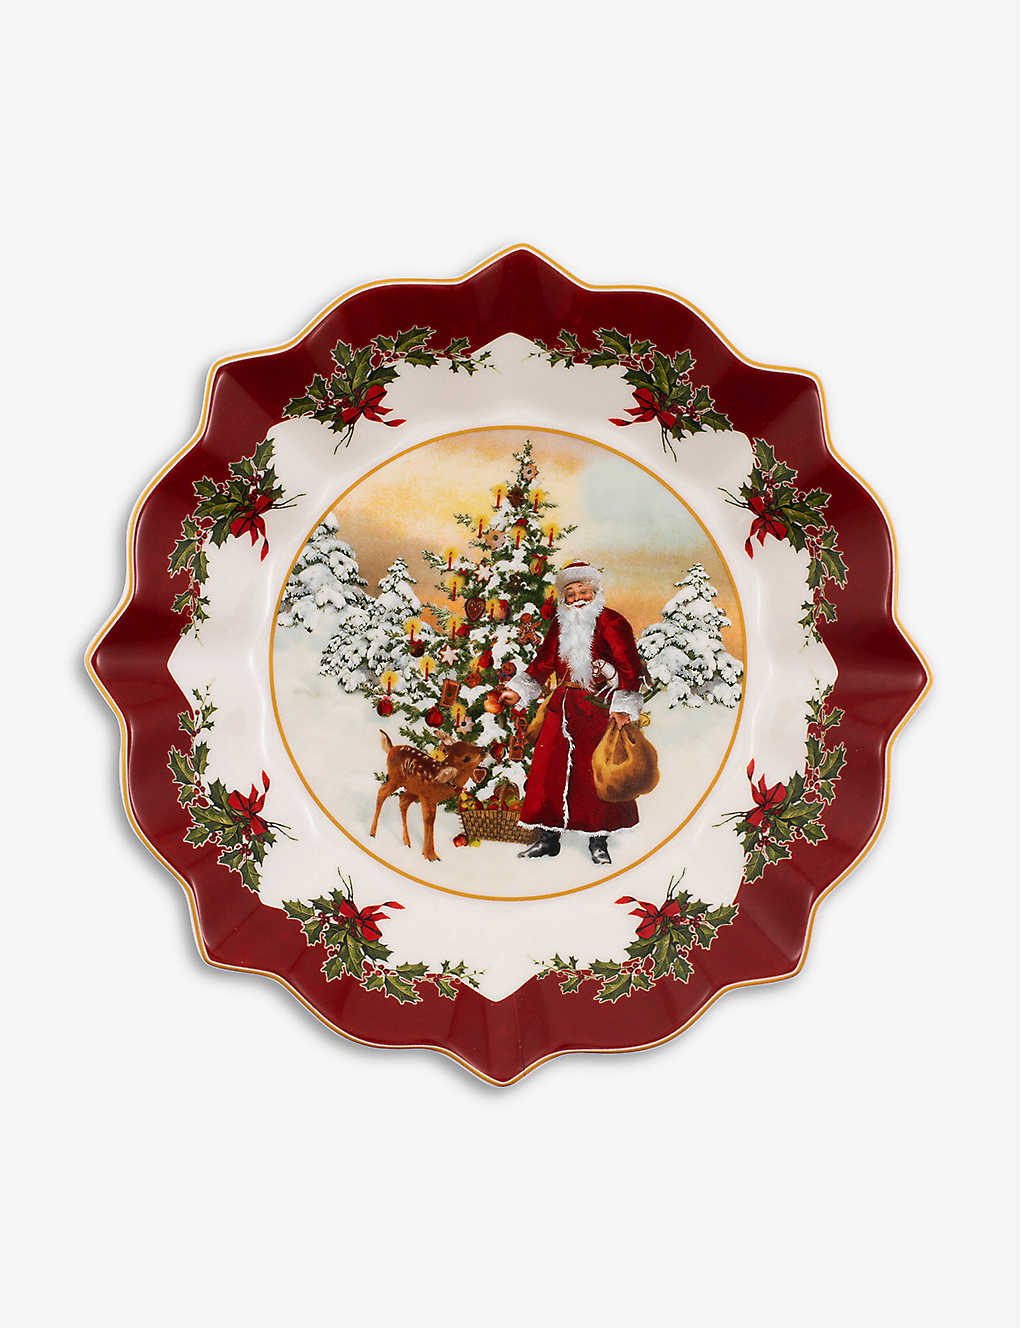 VILLEROY & BOCH: Toy's Delight Santa large bowl 24.5cm